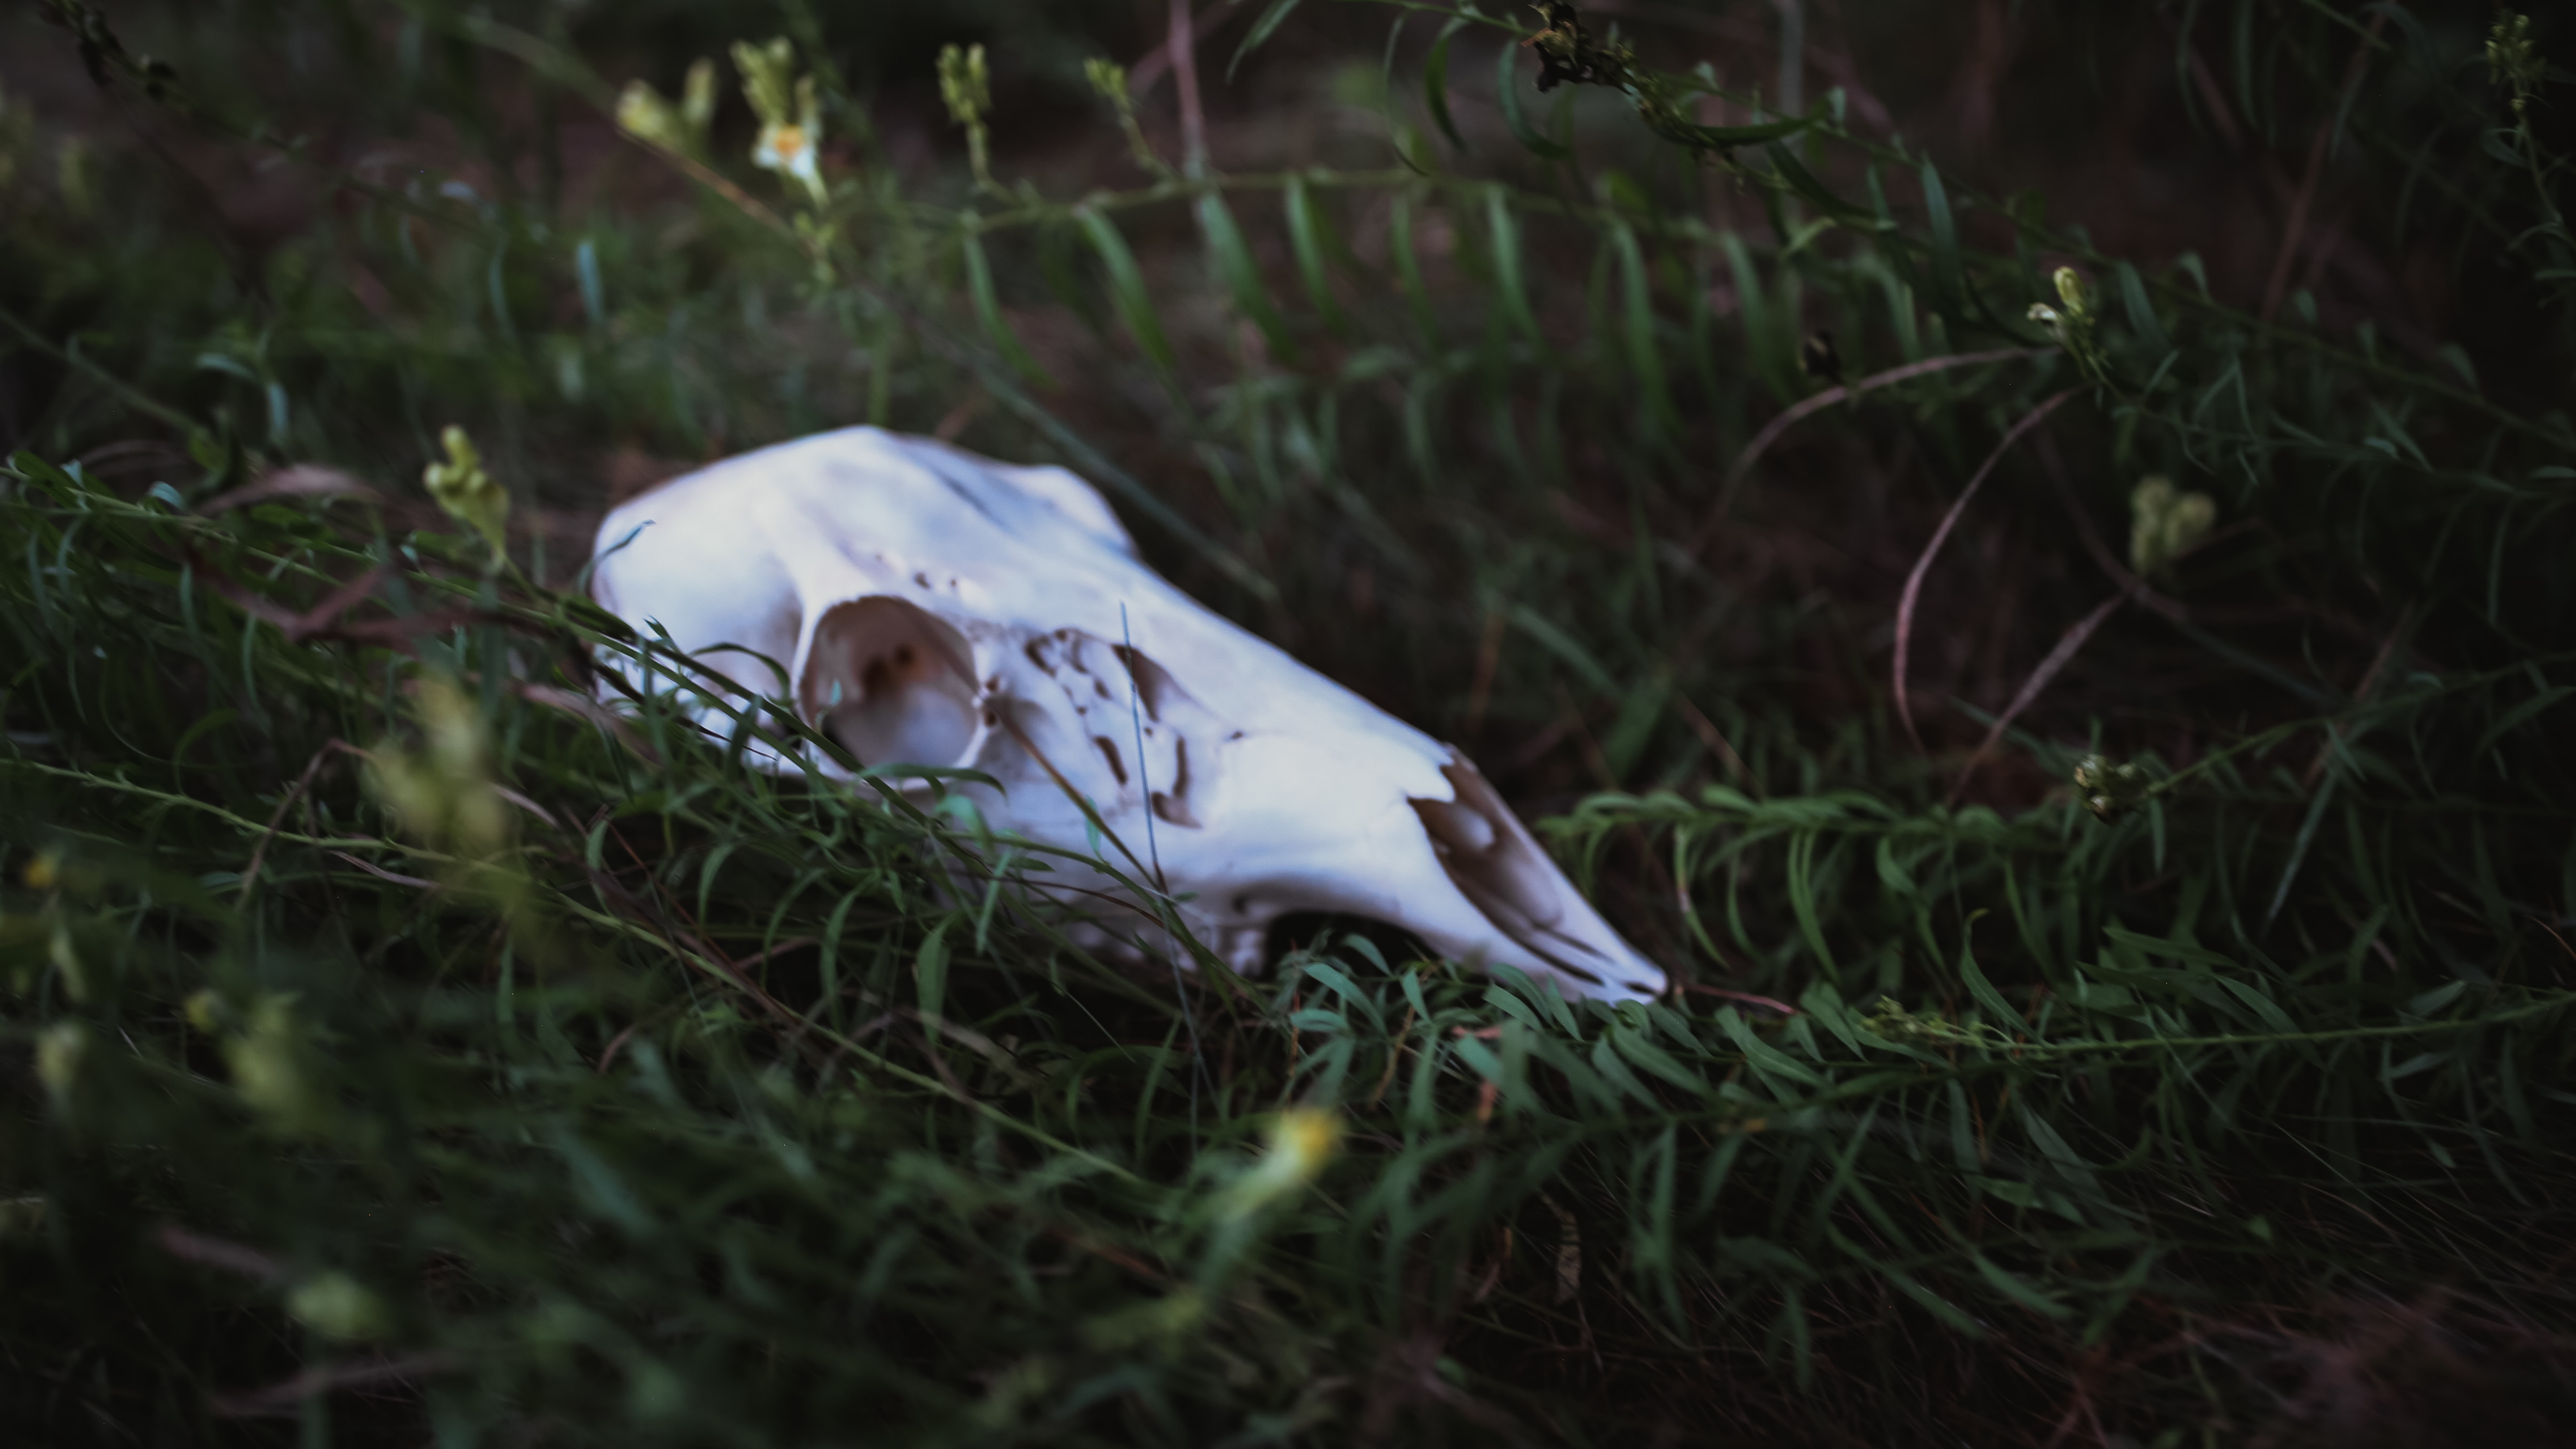 white animal skull on the ground